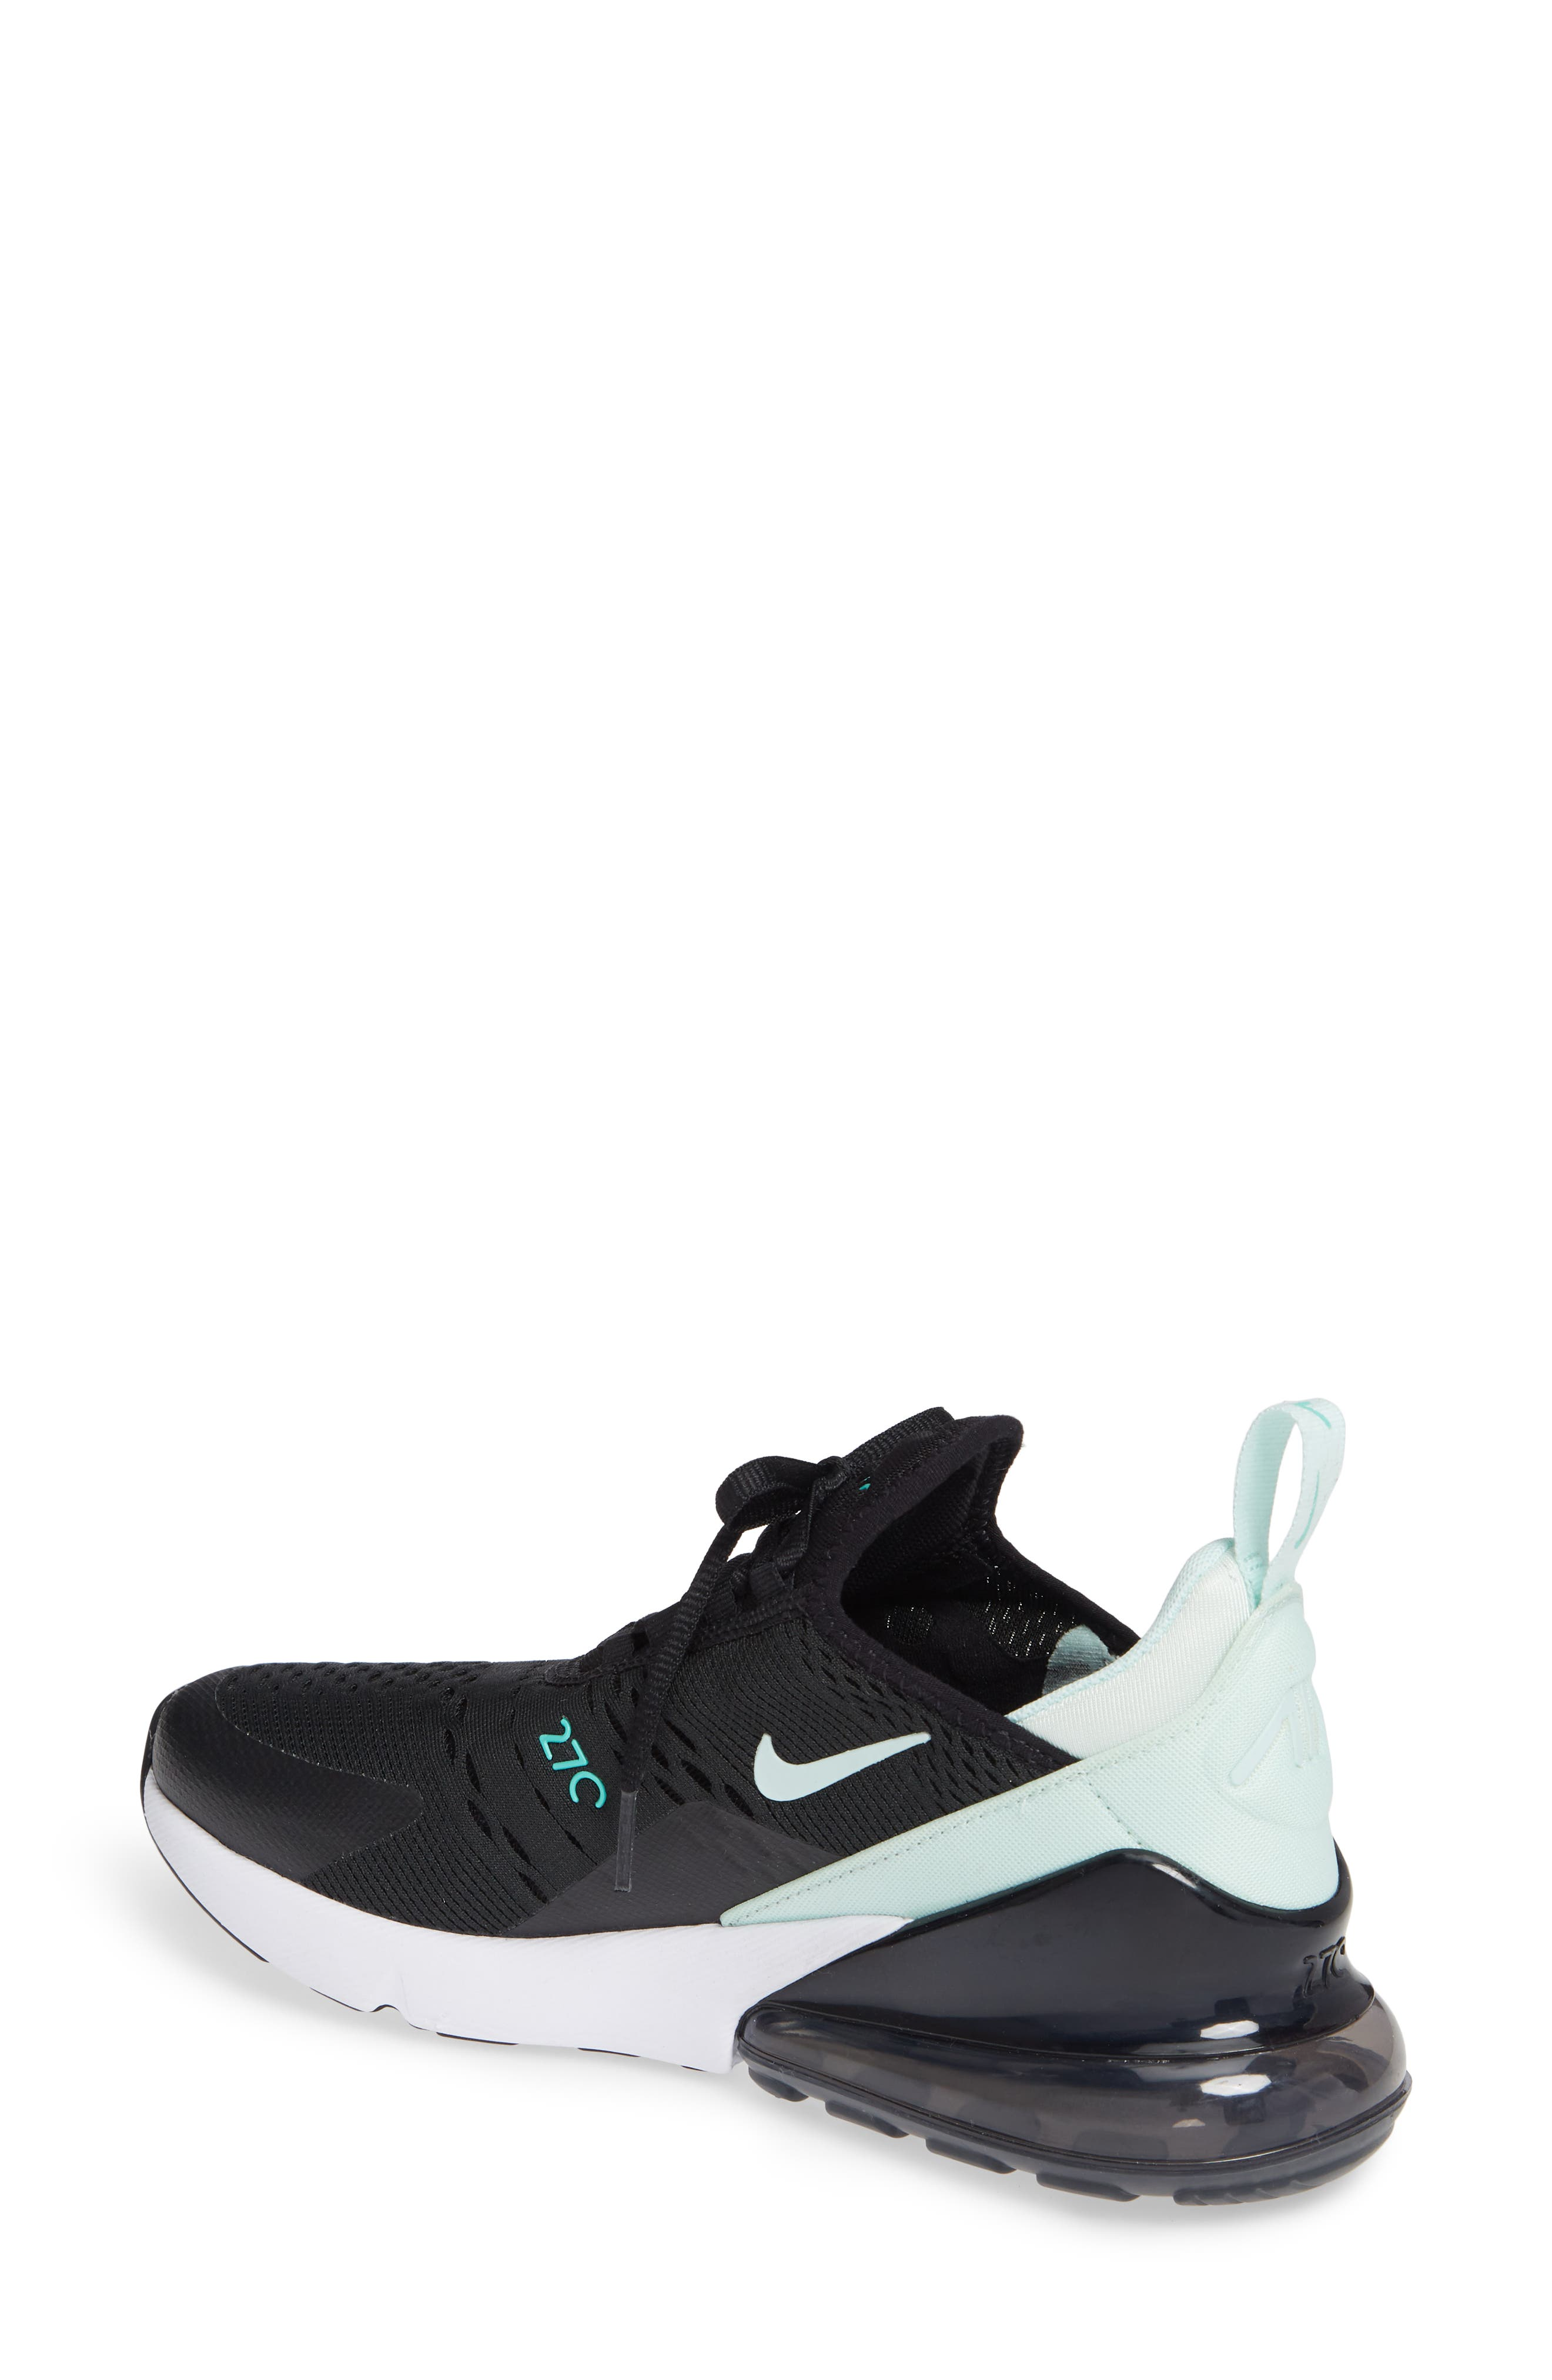 Air Max 270 Premium Sneaker,                             Alternate thumbnail 2, color,                             BLACK/ IGLOO TURQUOISE WHITE